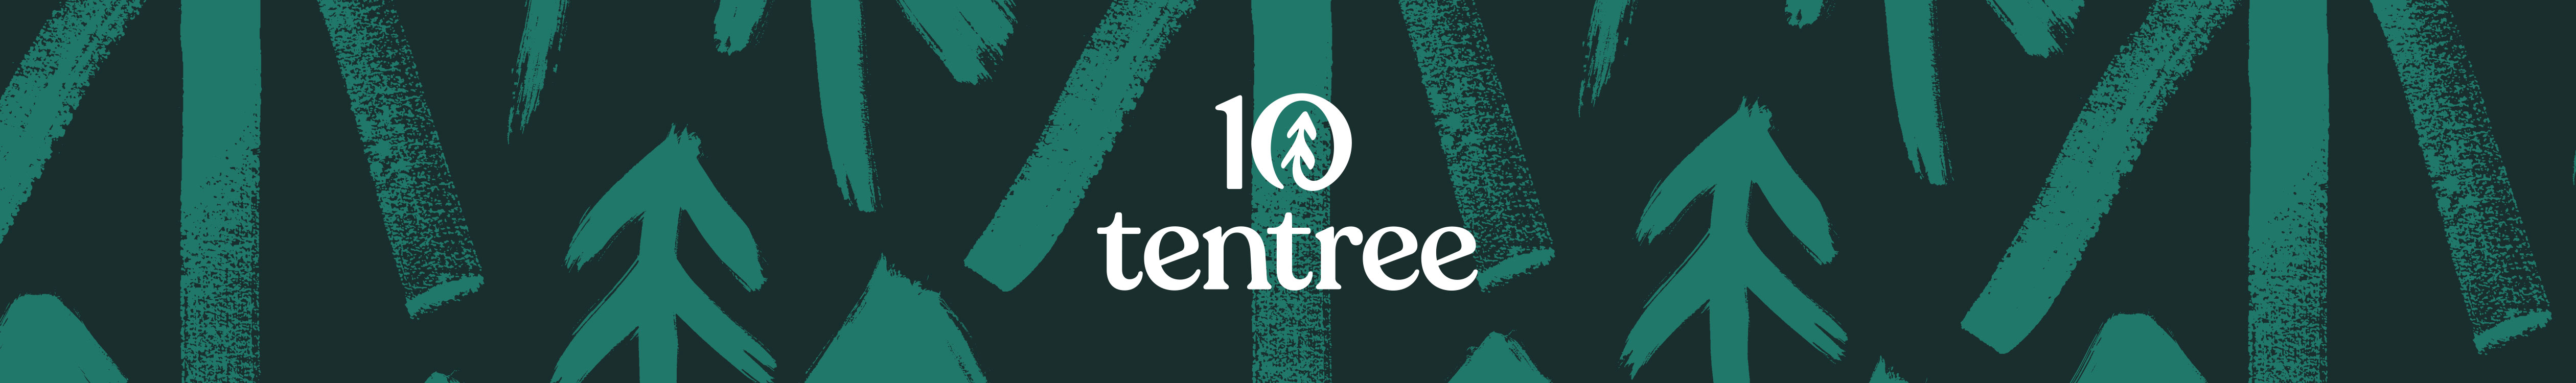 Pictures of green trees on the background with the Tentree brand logo in the middle.